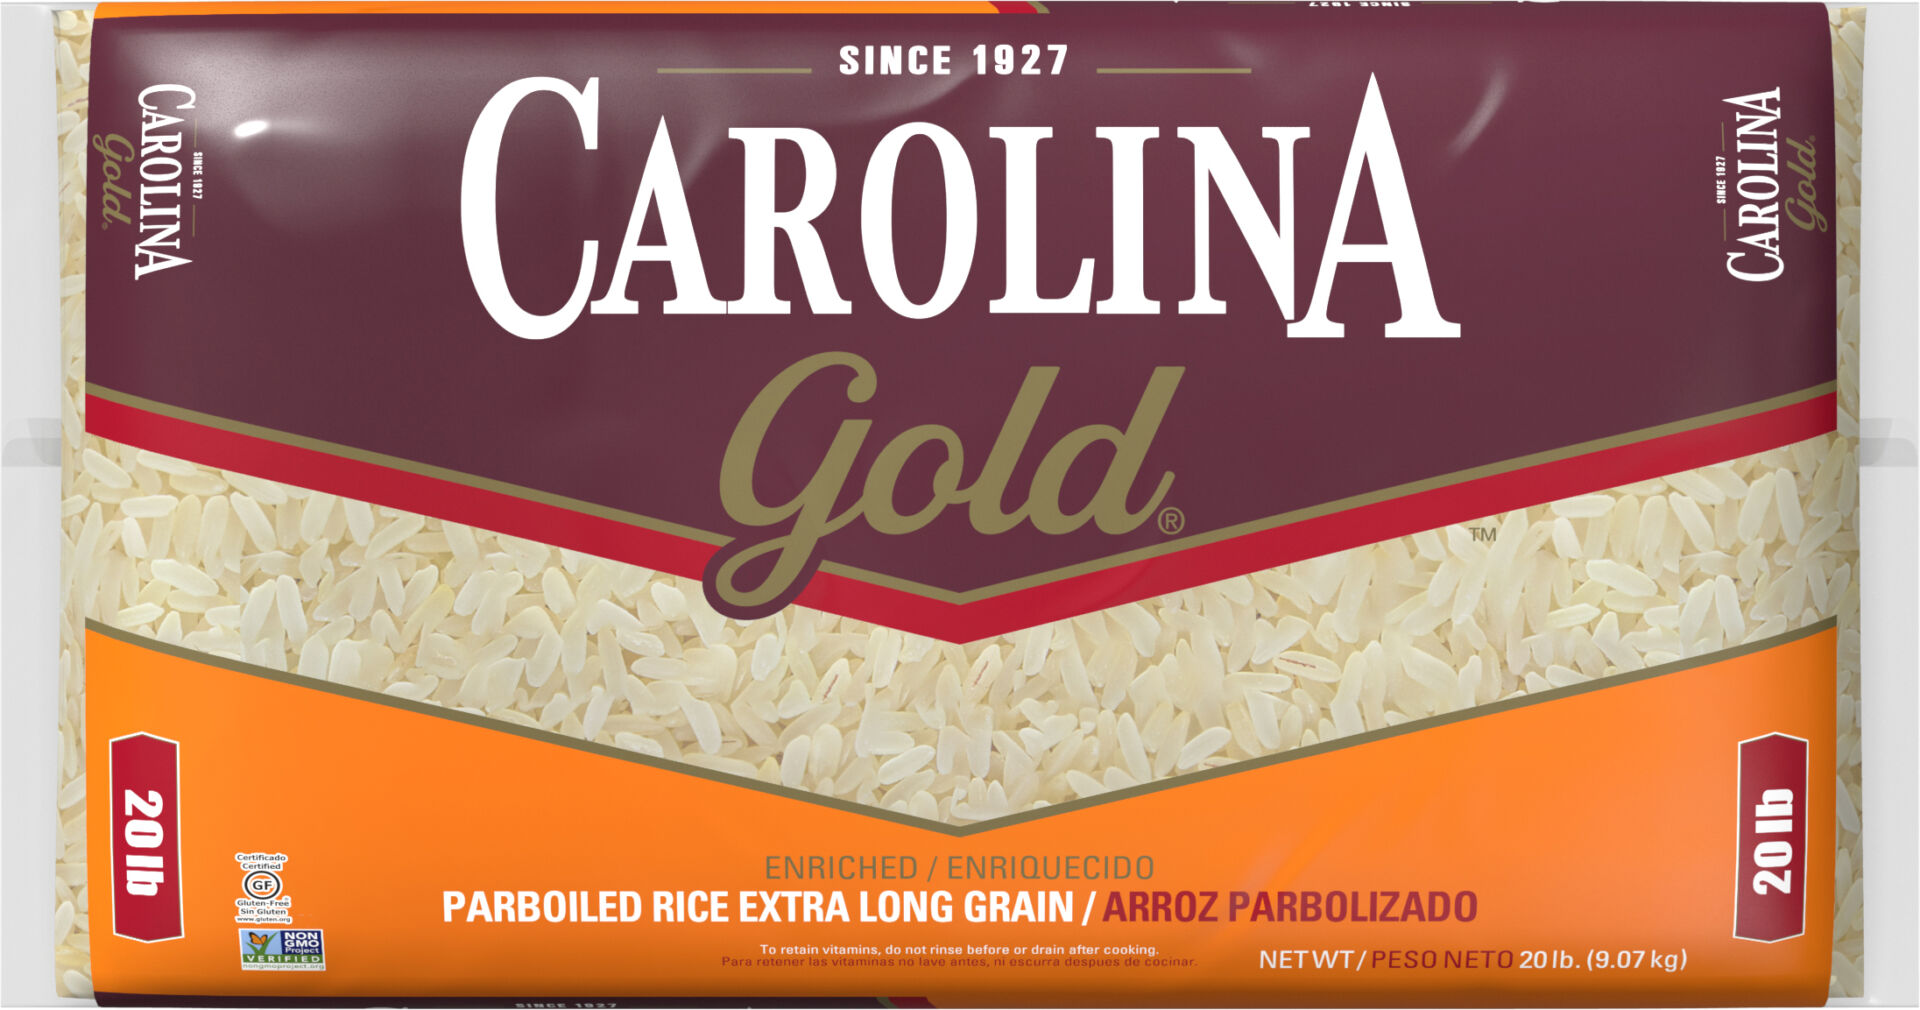 Carolina Gold Parboiled Rice Extra Long Grain